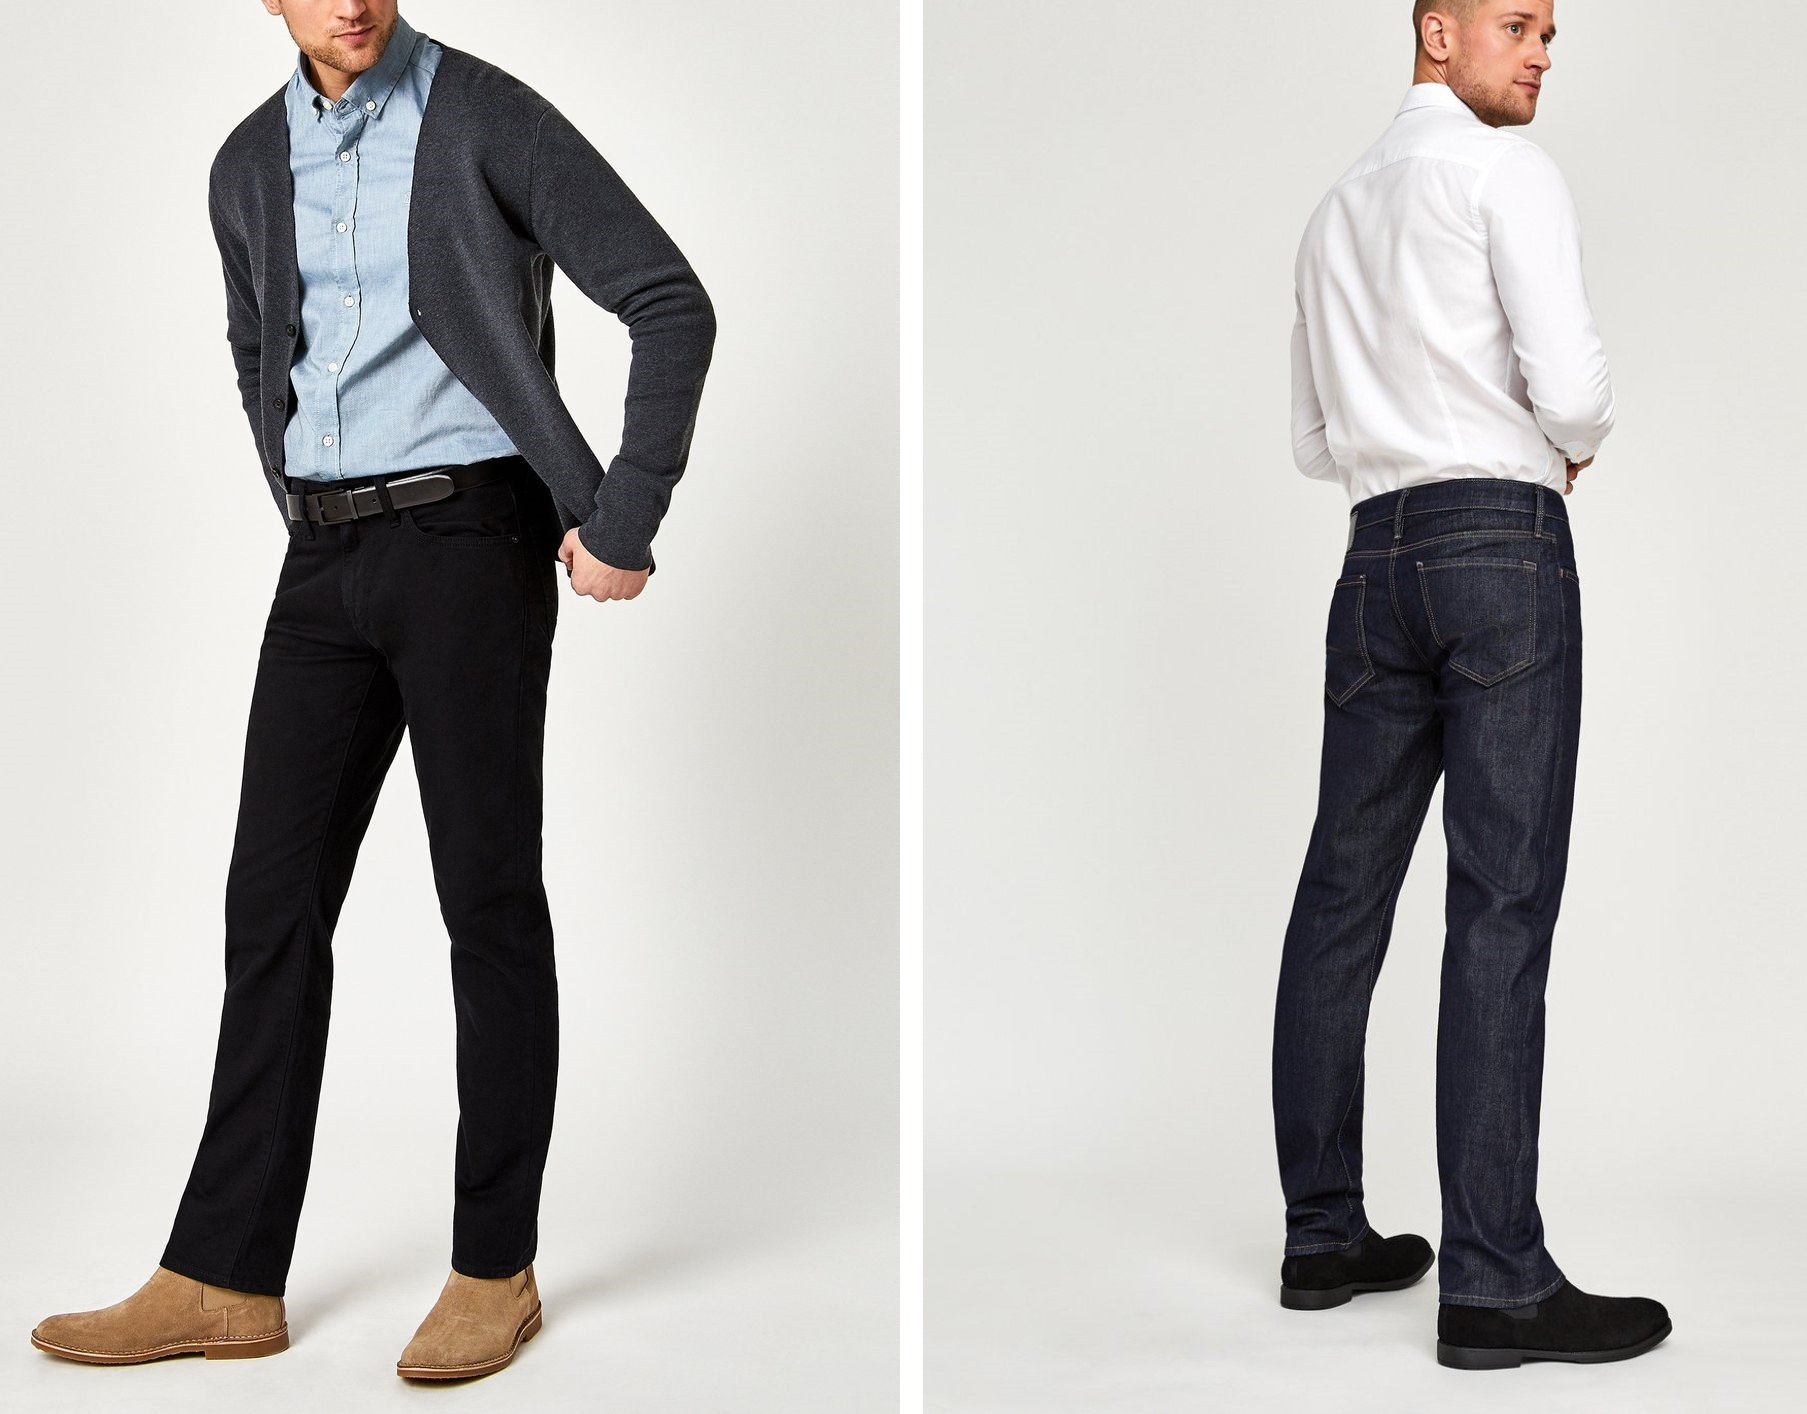 How to dress up dark jeans